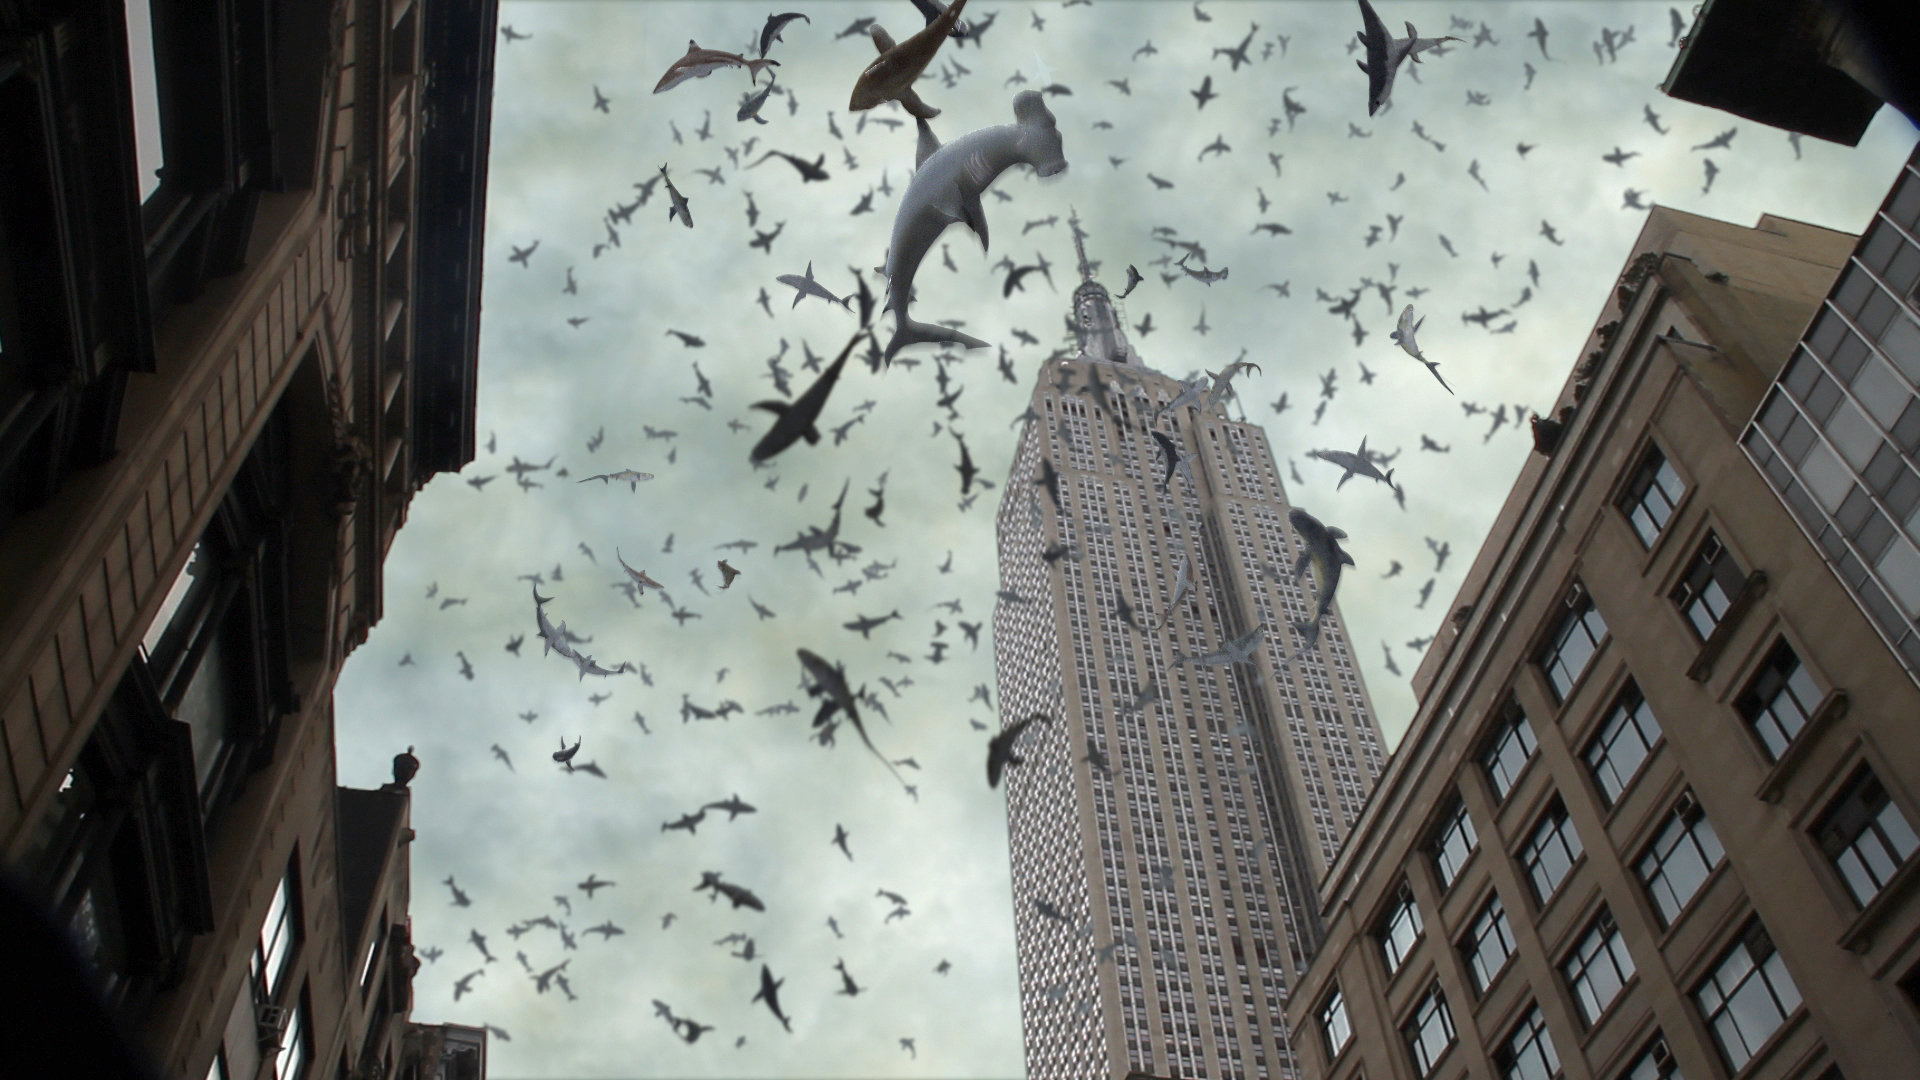 Sharks rain down on the streets of New York City in Sharknado 2 The Second One (2014)